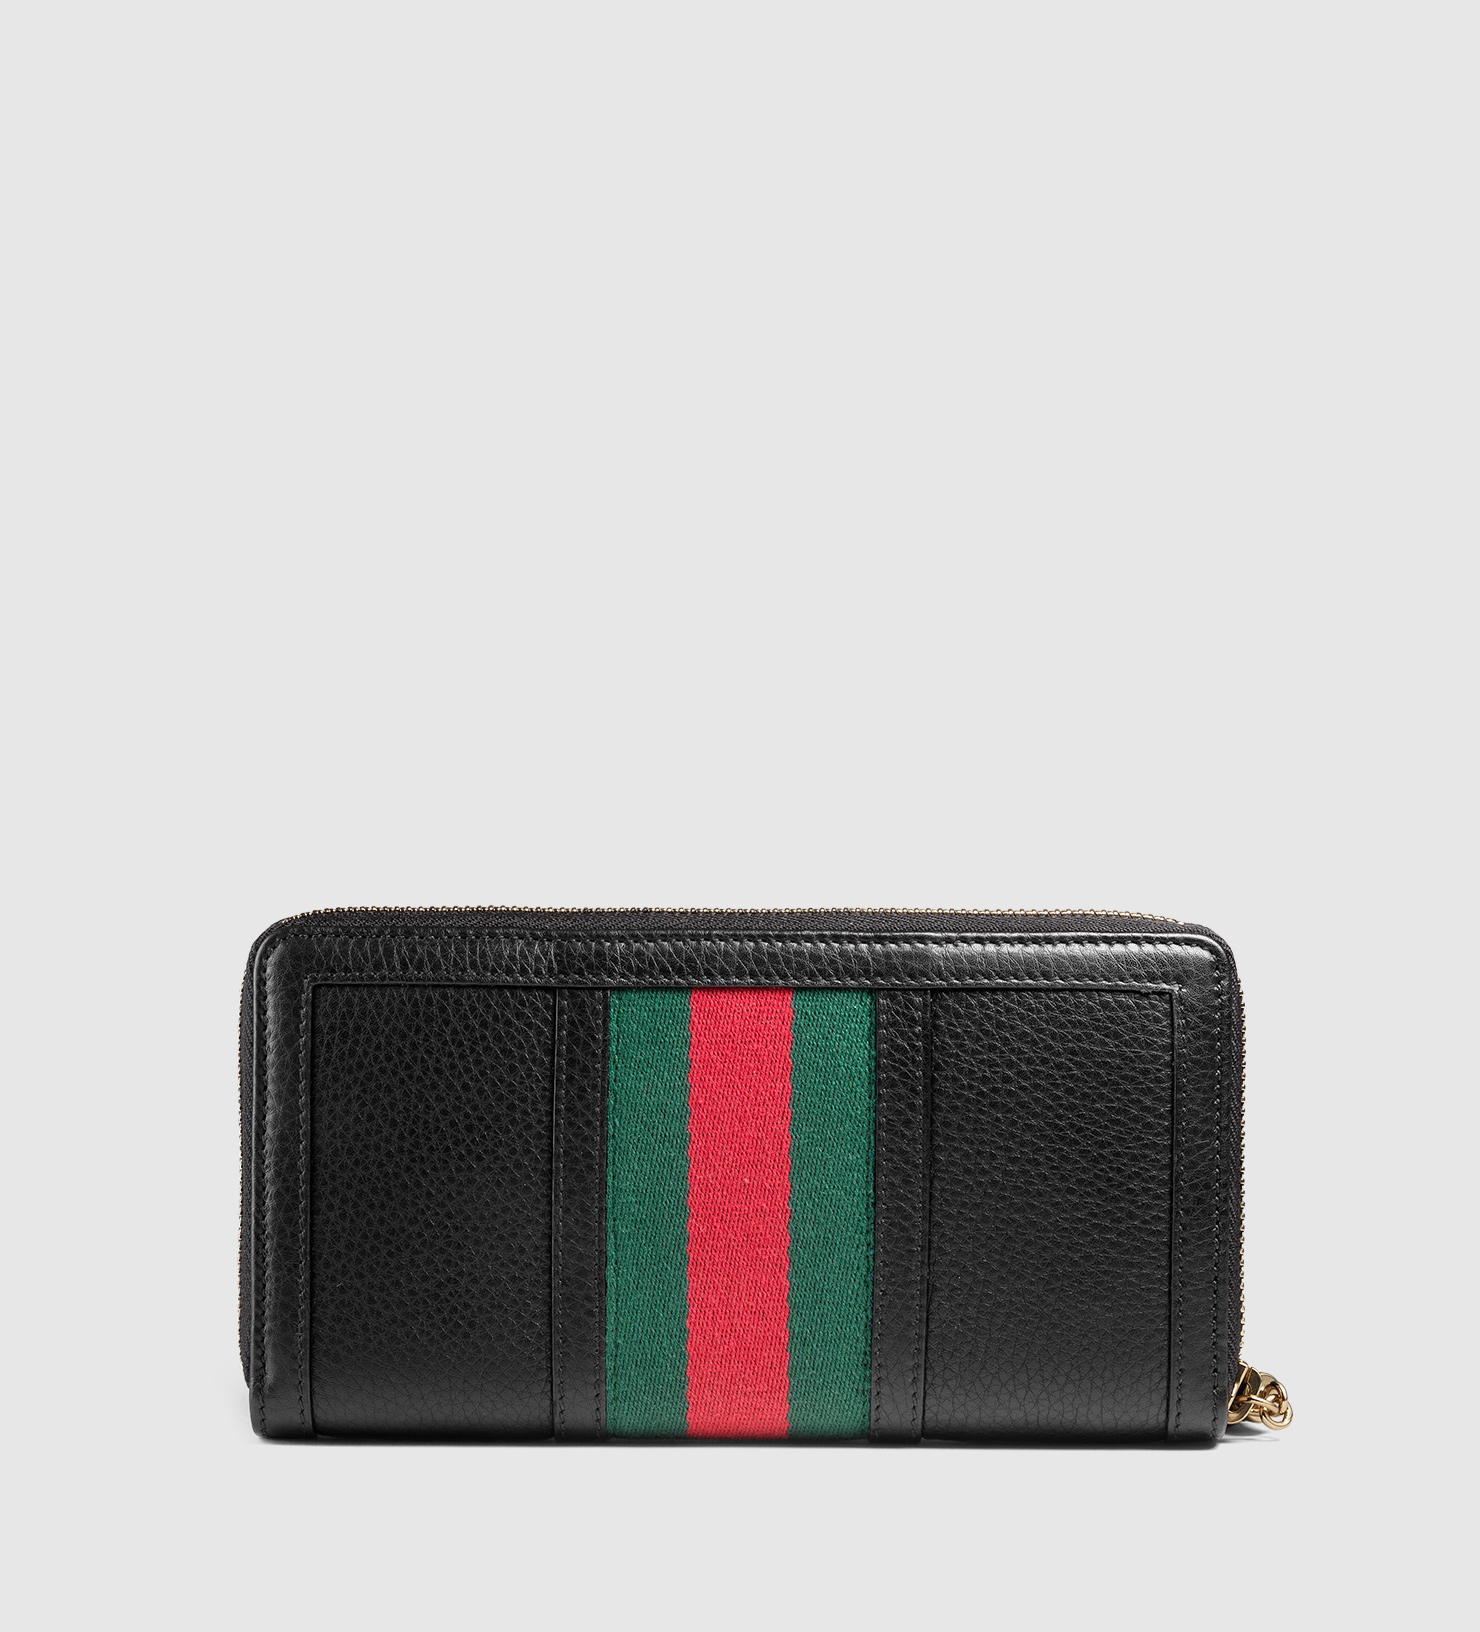 0706fd3bd386 Gucci Rania Leather Zip Around Wallet - Lyst